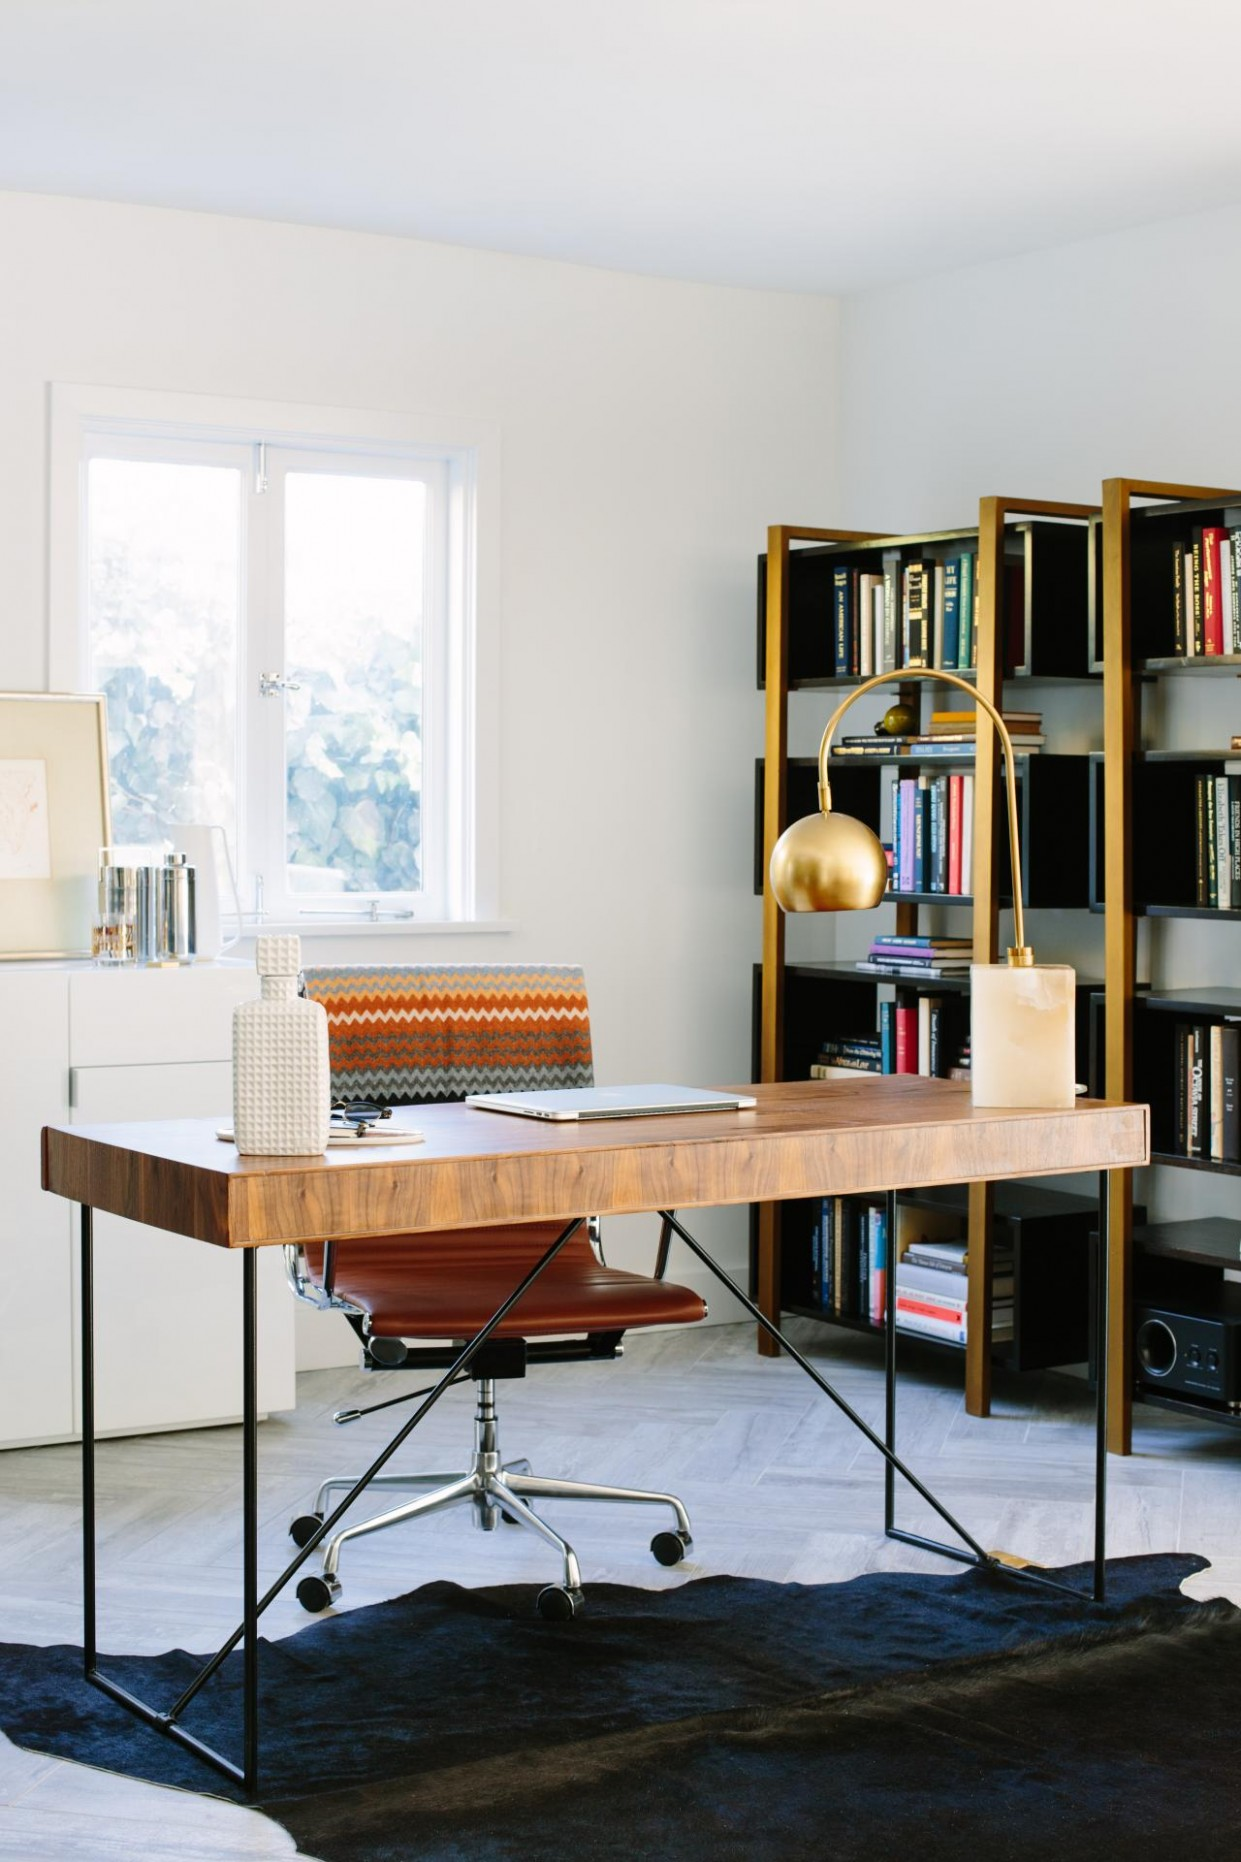 12 Tips for Designing Your Home Office  HGTV - Home Office Design Ideas 2021